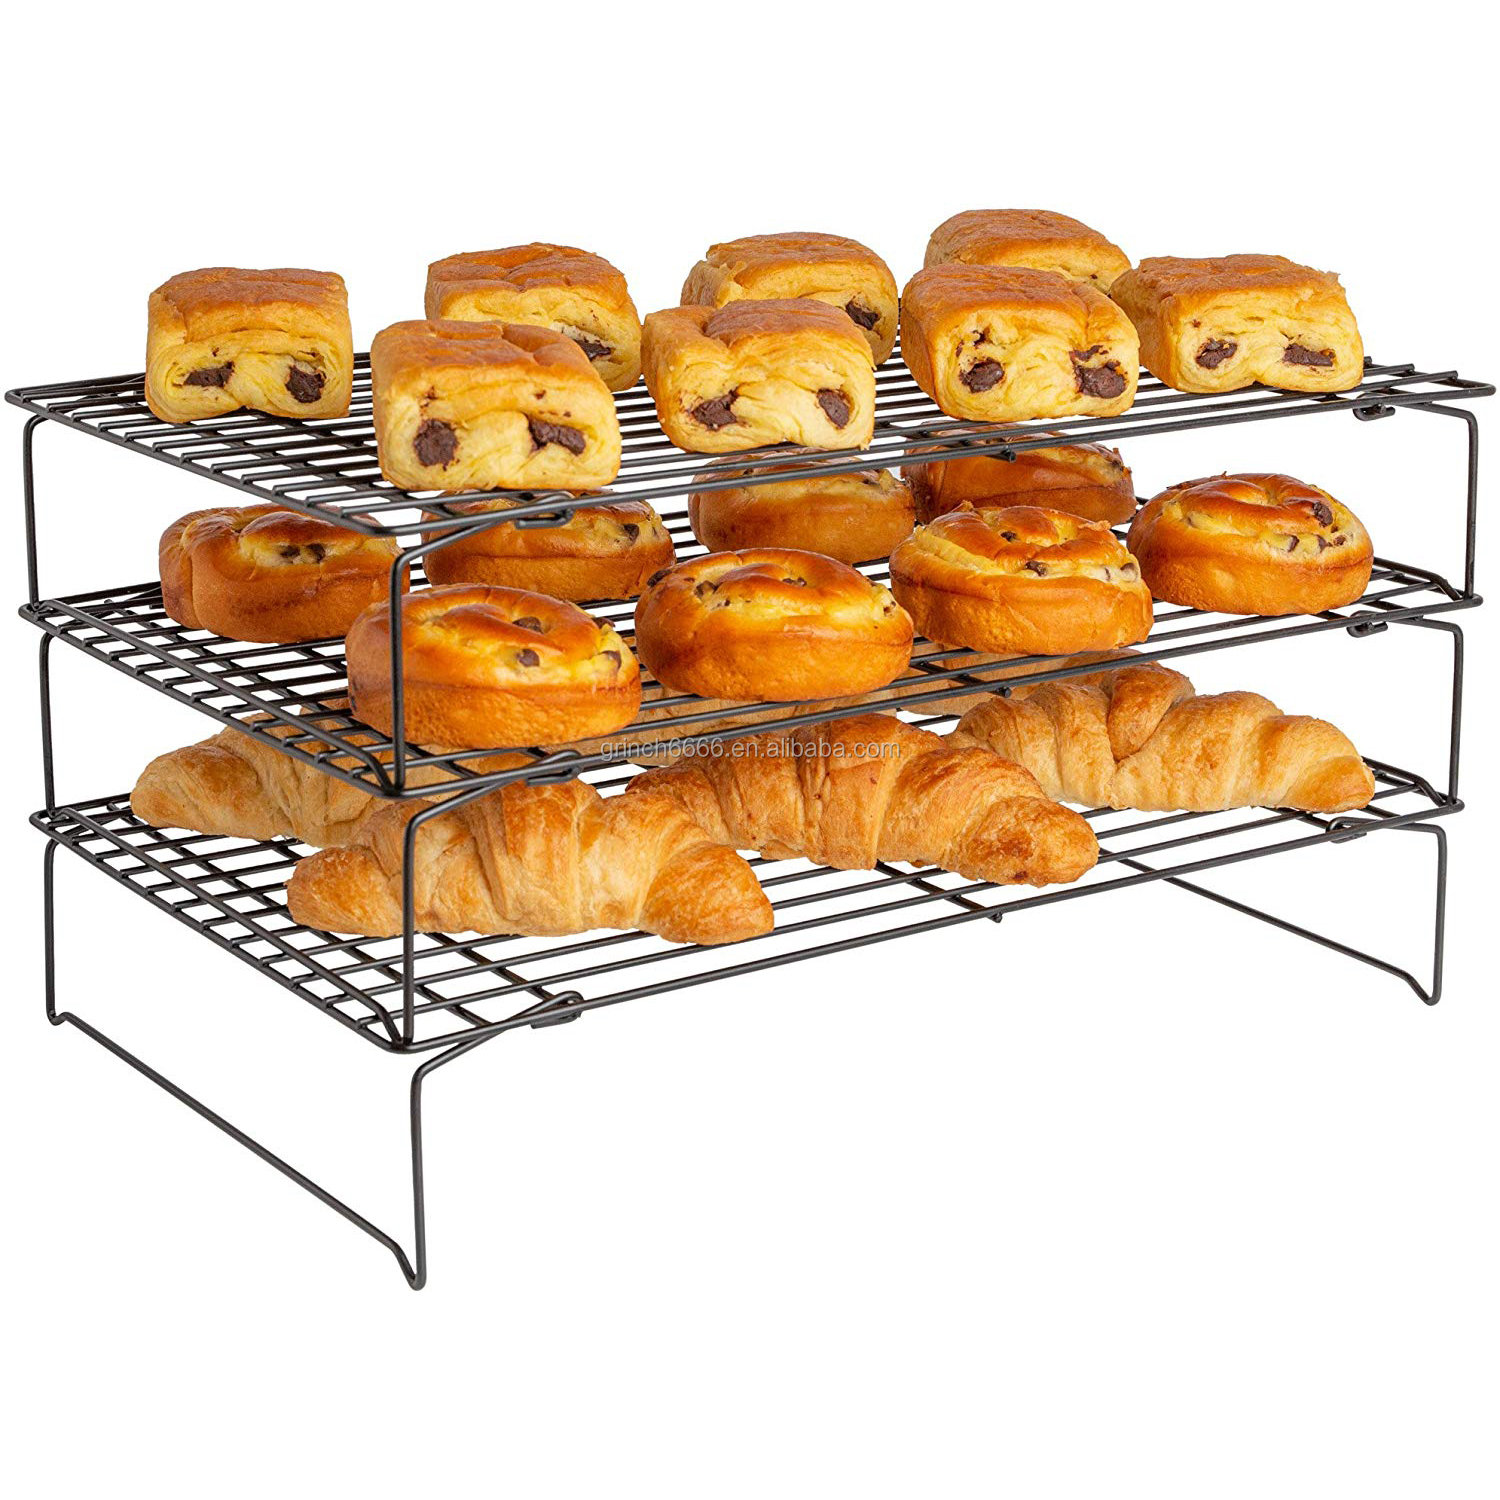 2021 3 tier cooling rack non stick oven safe wire cookie cooling rack stackable wire trays with collapsible legs for cakes buy 3 tier cooling